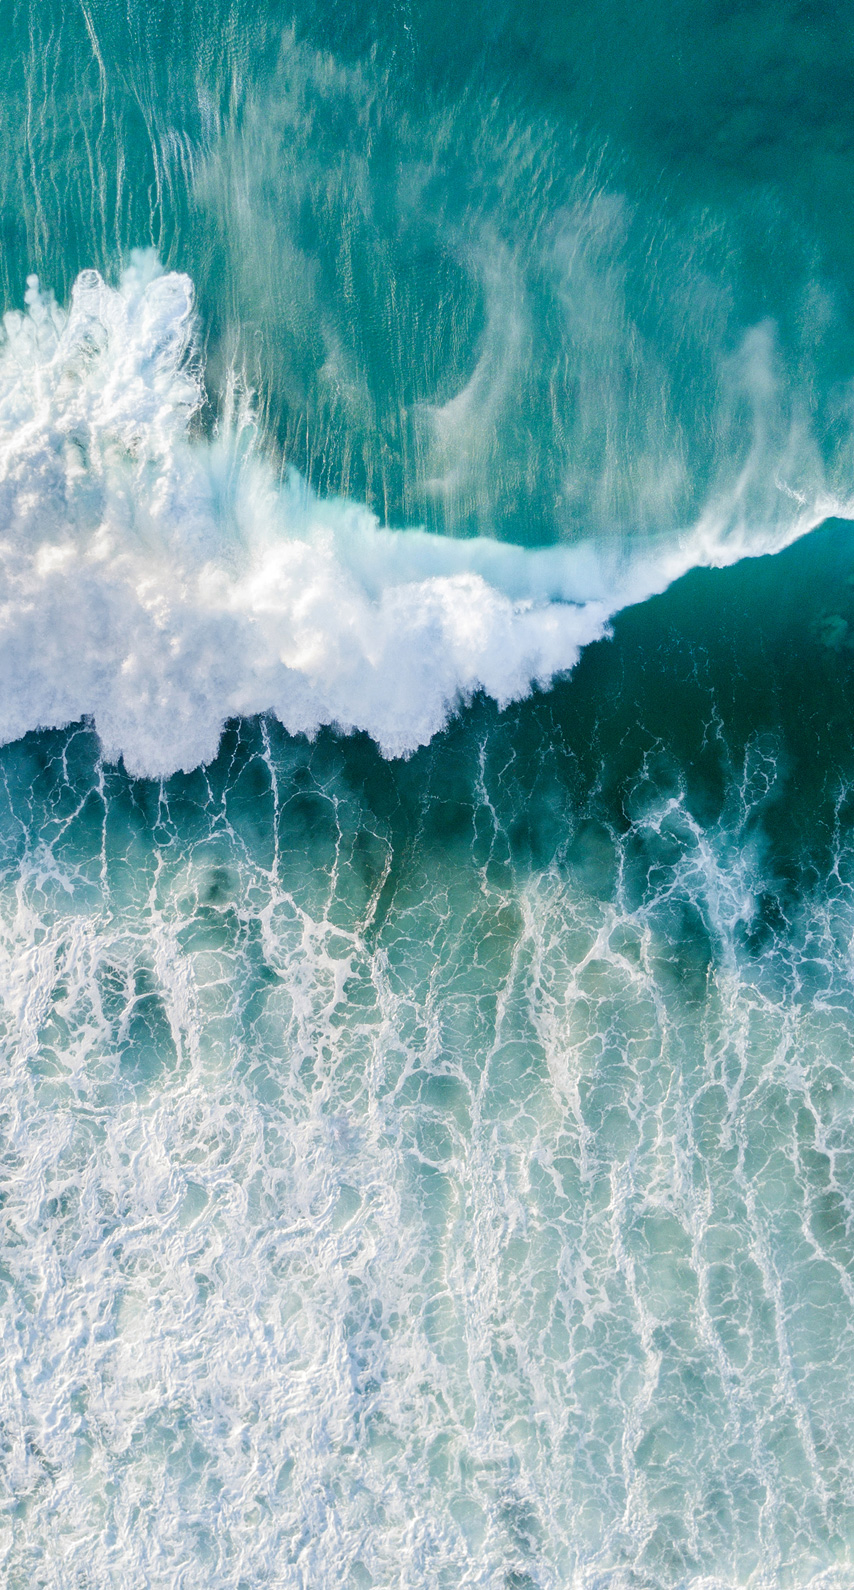 turquoise, waves, shore, summer, wave, desktop, no person, fair weather, weather, h2o, surf